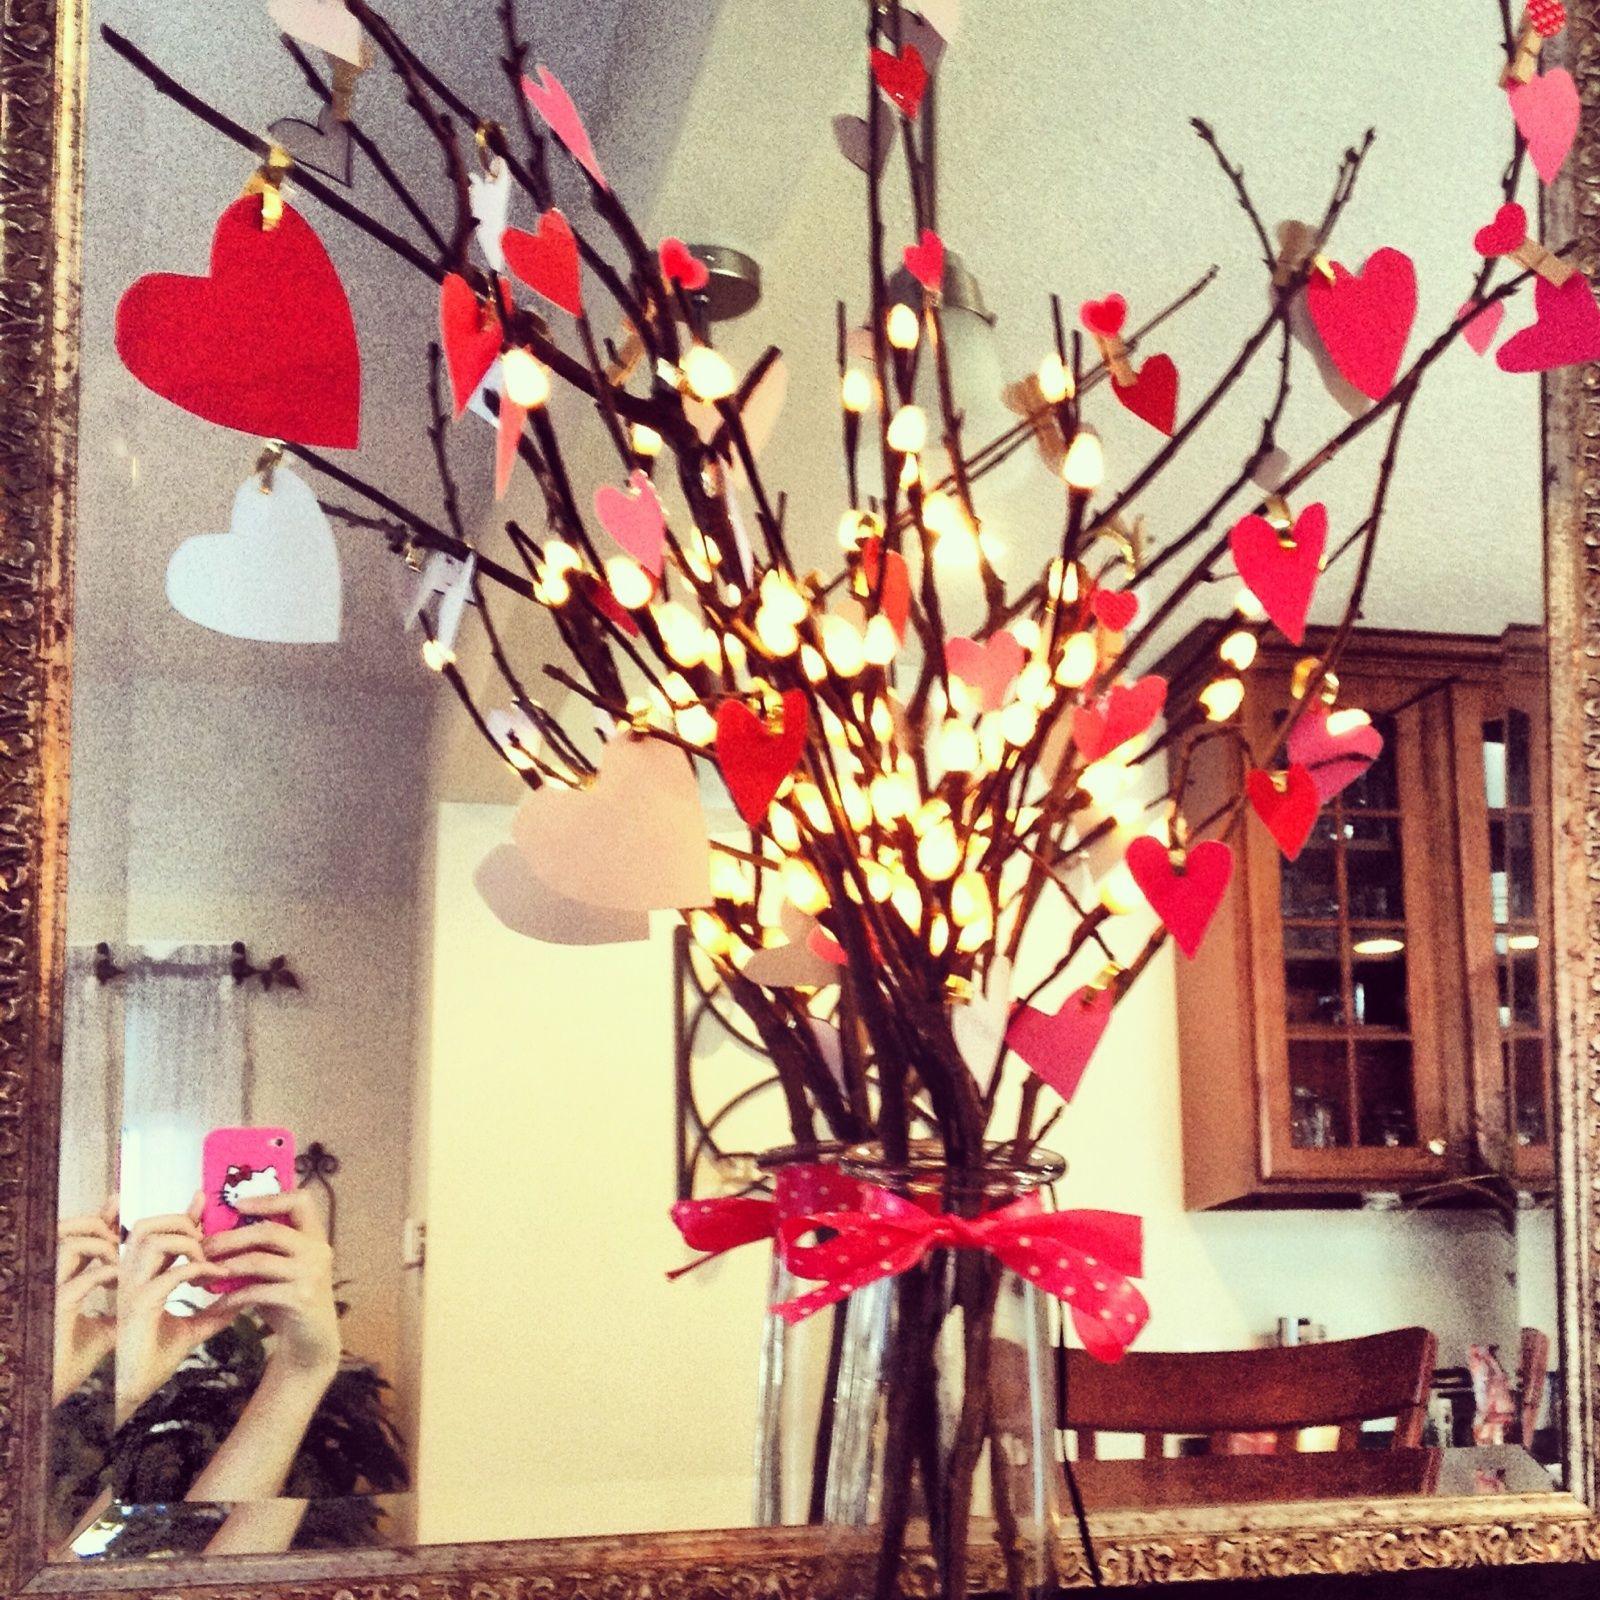 Table decoration ideas for valentines day - The Greatest 30 Diy Decoration Ideas For Unforgettable Valentine S Day